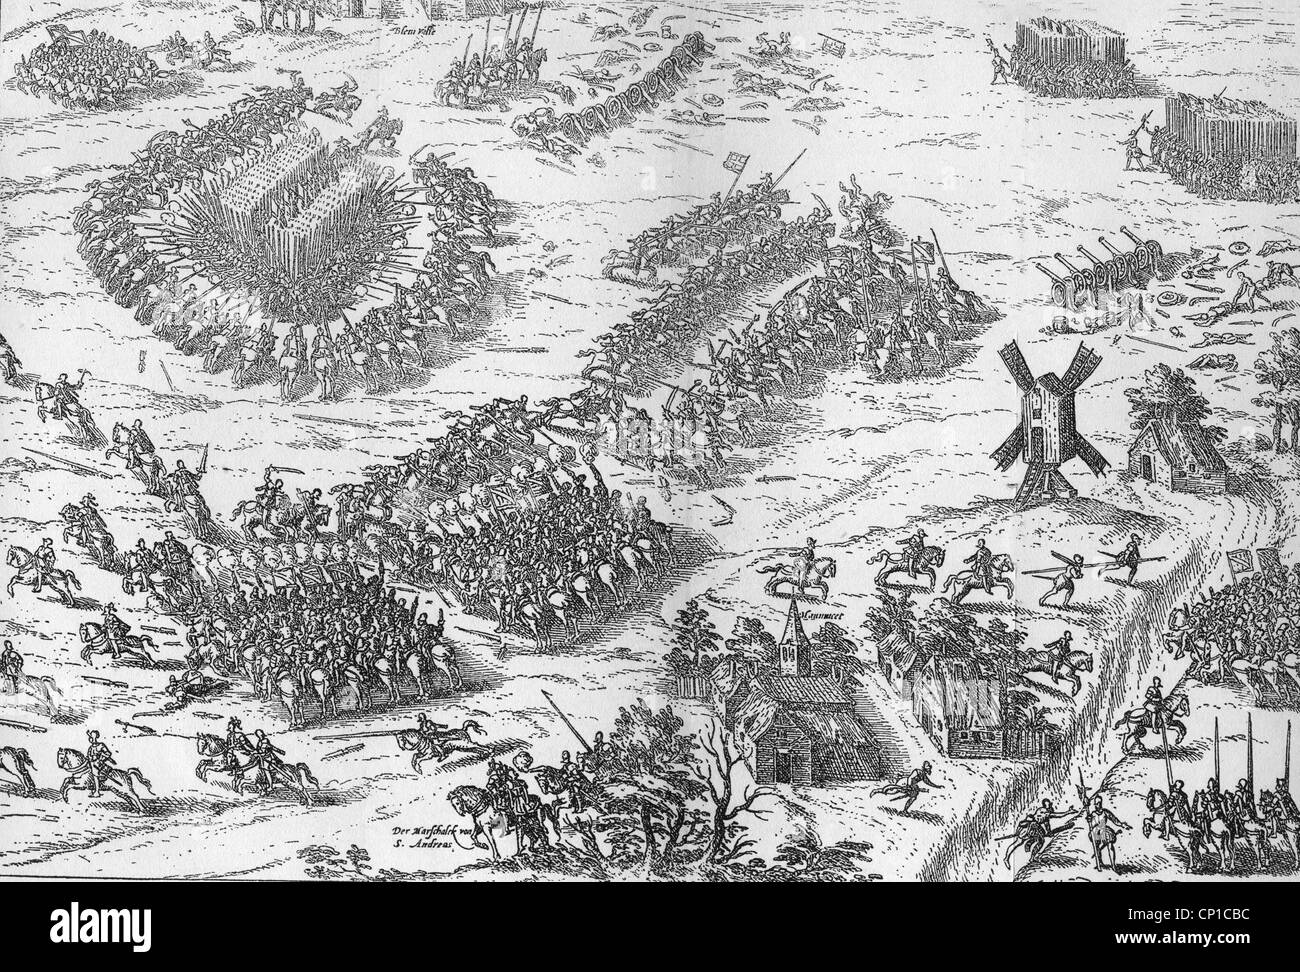 events, French Wars of Religion 1562 - 1598, first war 1562 - 1563, Battle  of Dreux, 19.12.1562, third encounter, death of Marshall Jacques d'Albon,  ...